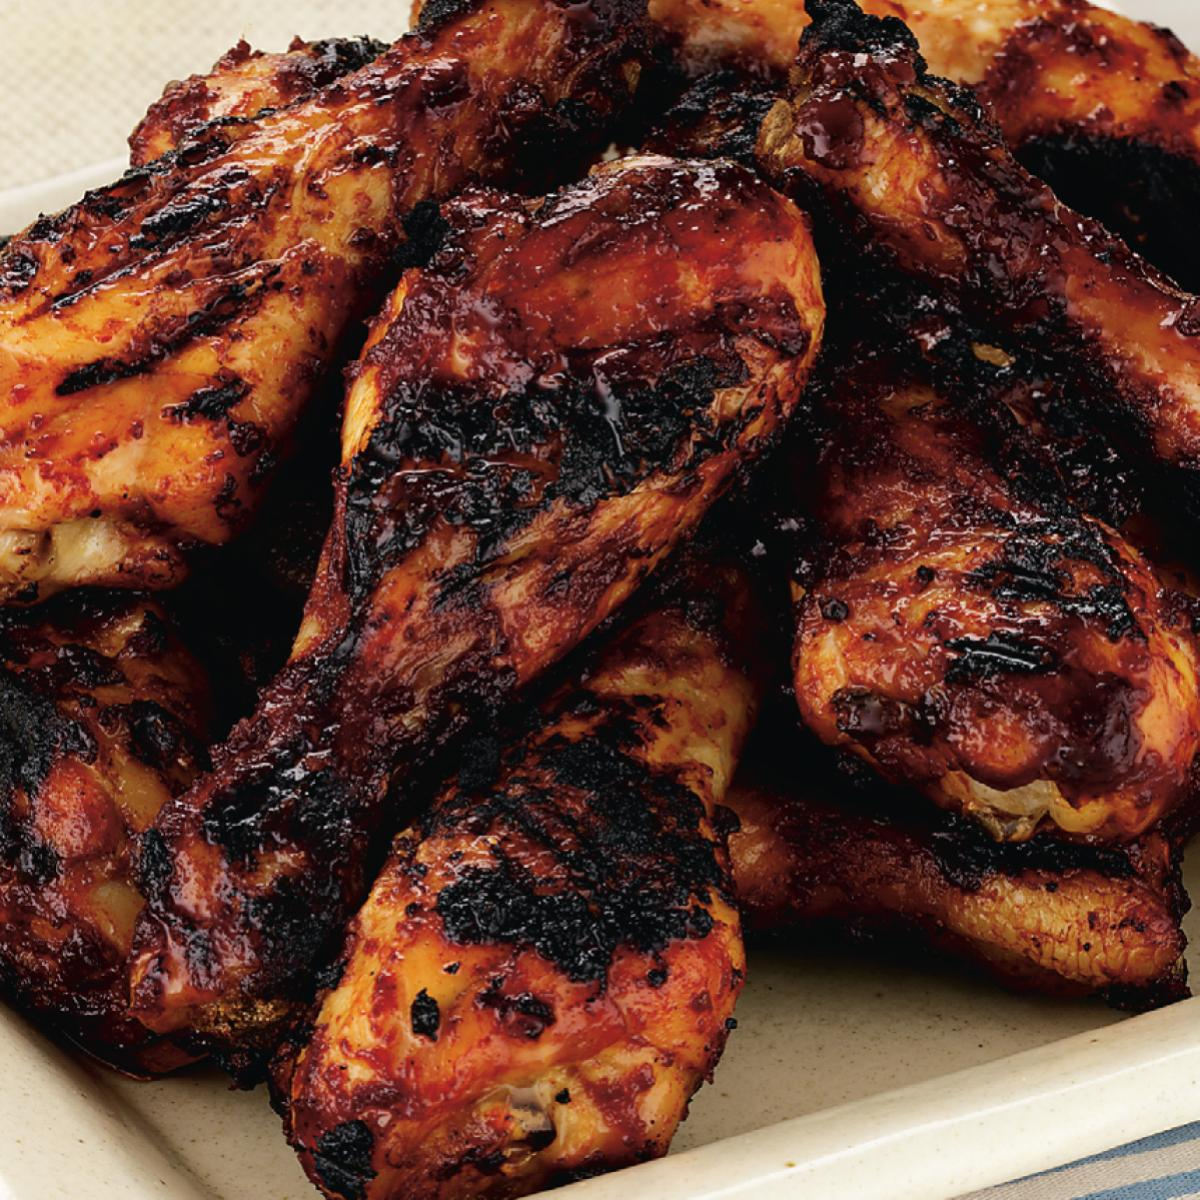 A picture of Delia's Barbecued Chicken with an Apricot Glaze recipe